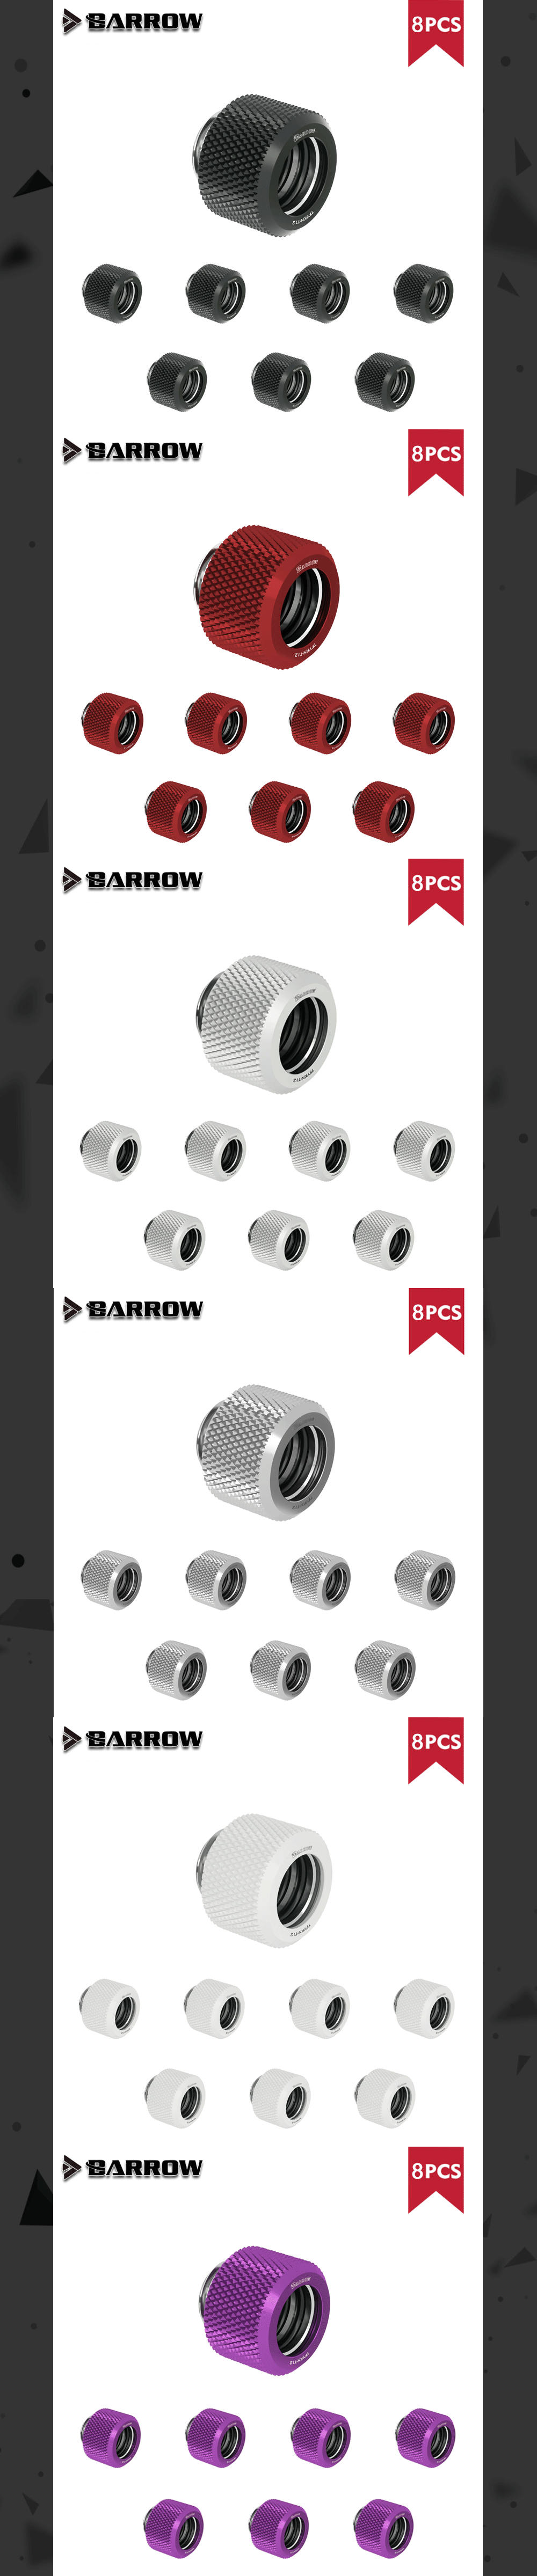 """Barrow Hard Tube Fitting G1/4"""" Choice Water Cooling Adapters Suitable Od12mm / Od14mm / Od16mm Computer Case , 8pcs/lot, TFYKN"""